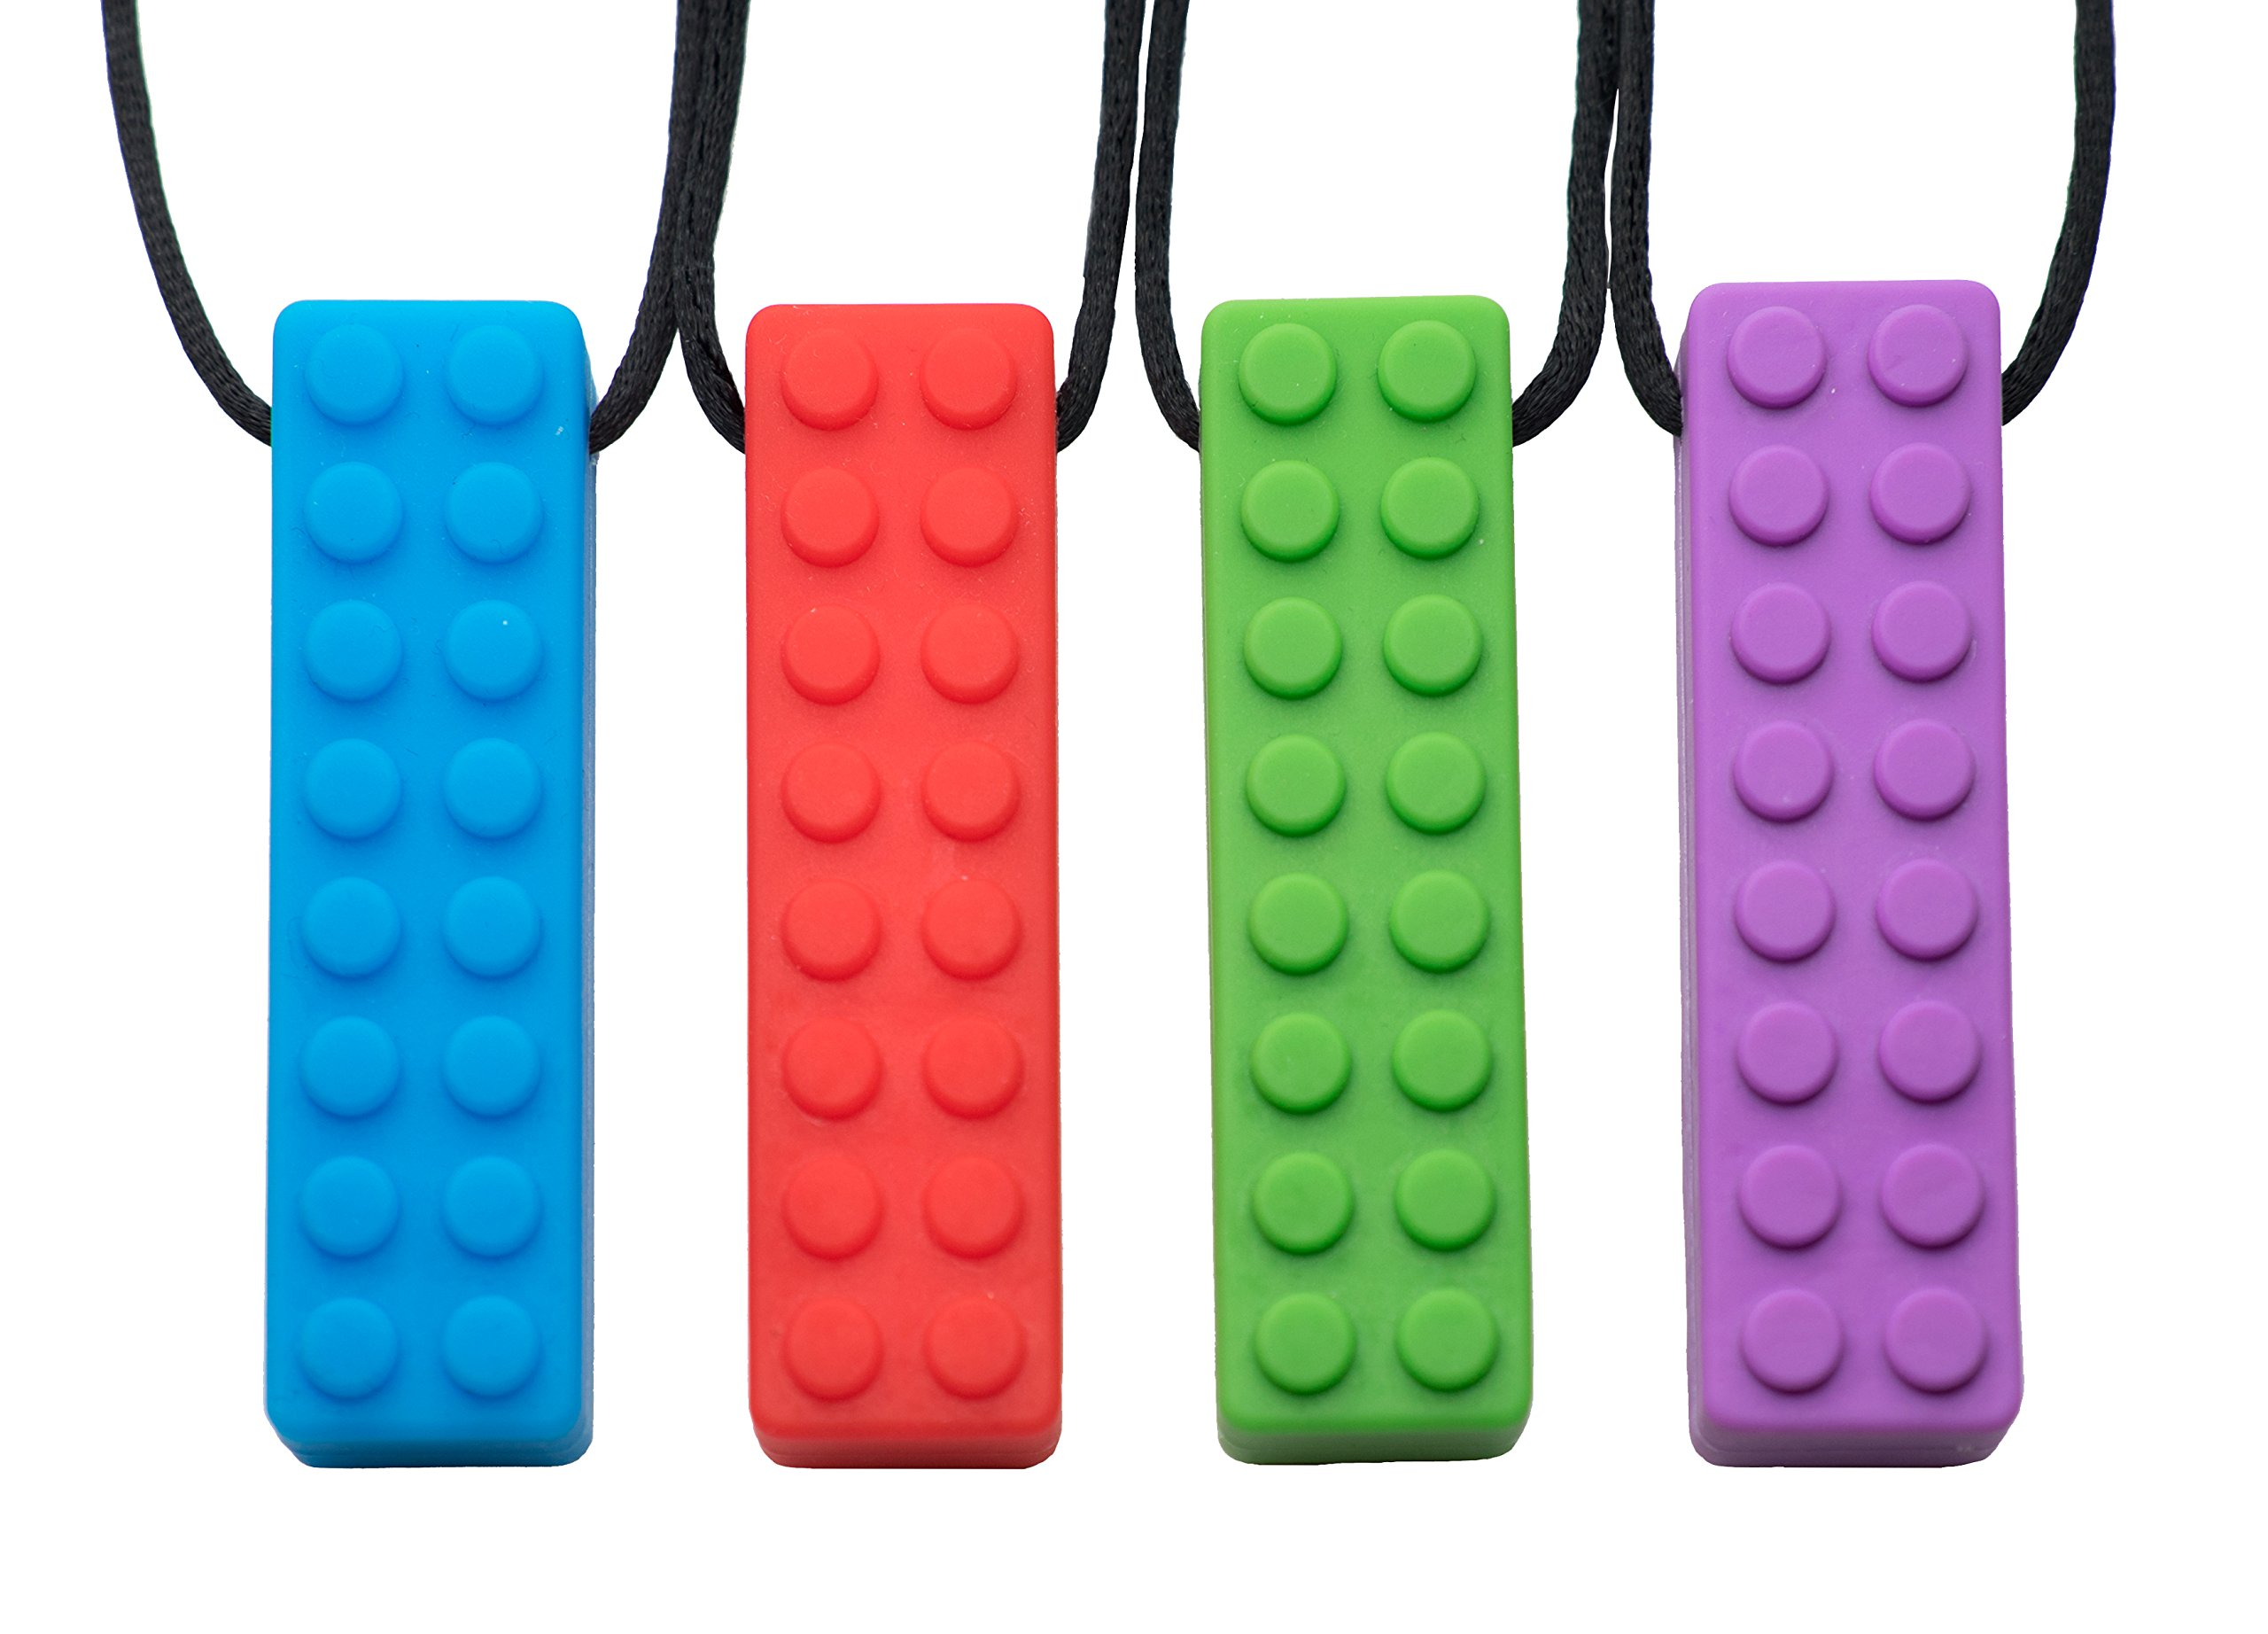 Chew Chew Sensory Lego Teether Necklace 4-Pack – Best for Autism, Biting and Teething Kids – Durable and Strong Silicone Chewy Toys - Chewing Pendant for Boys & Girls - Fidget Chewlery Necklaces by Chew Chew